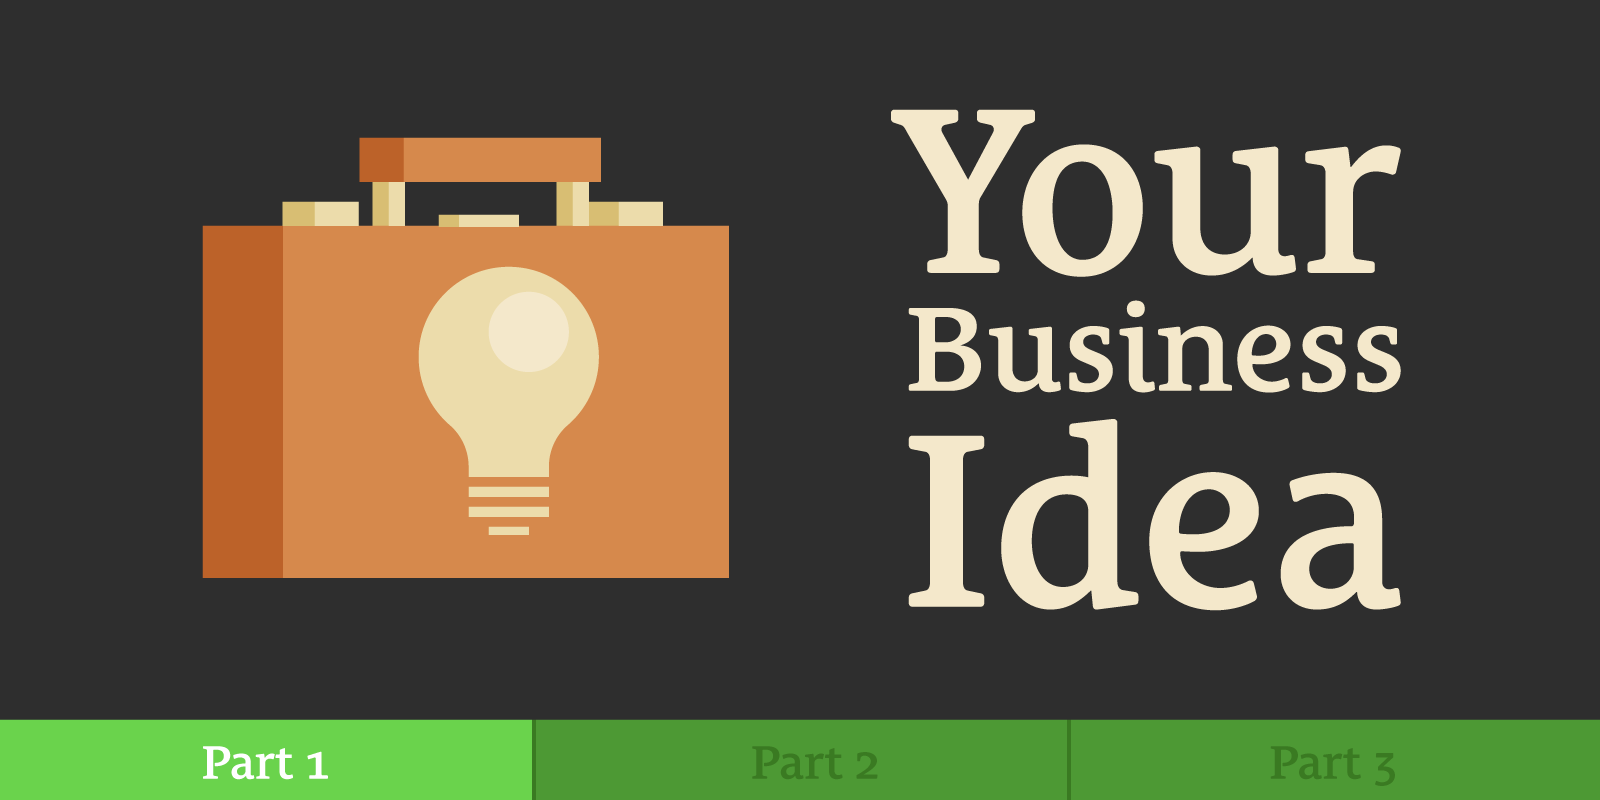 Part 1 of 3: How to Make Your First $1,000: Finding Your Business Idea